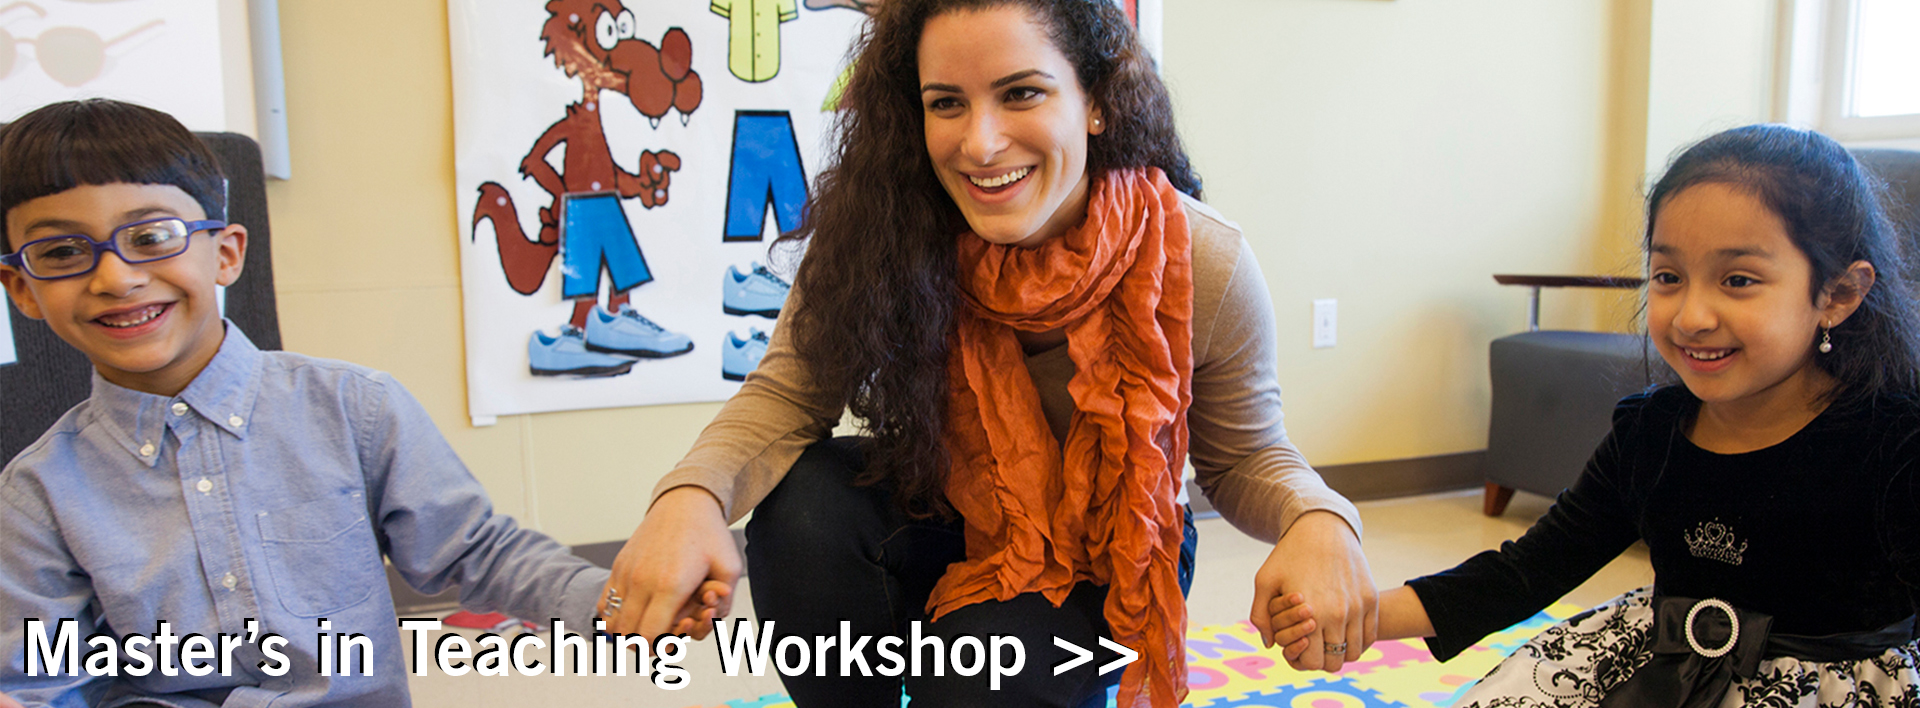 Student teacher with children in a classroom for MASTER'S IN TEACHING WORKSHOP banner